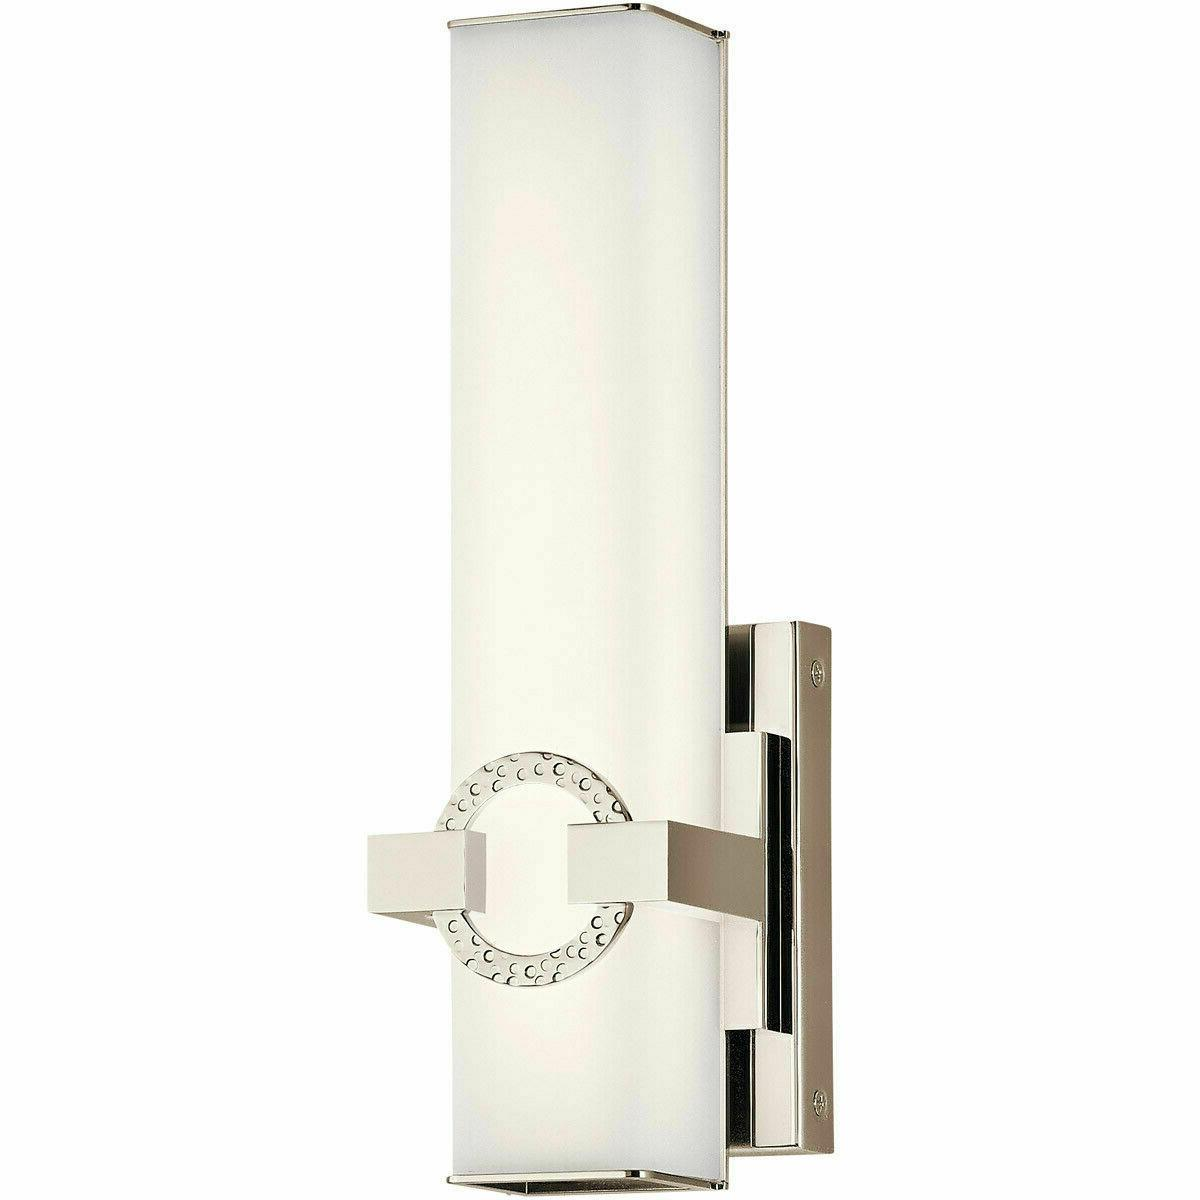 new 45876pnled bordeaux wall sconce light polished